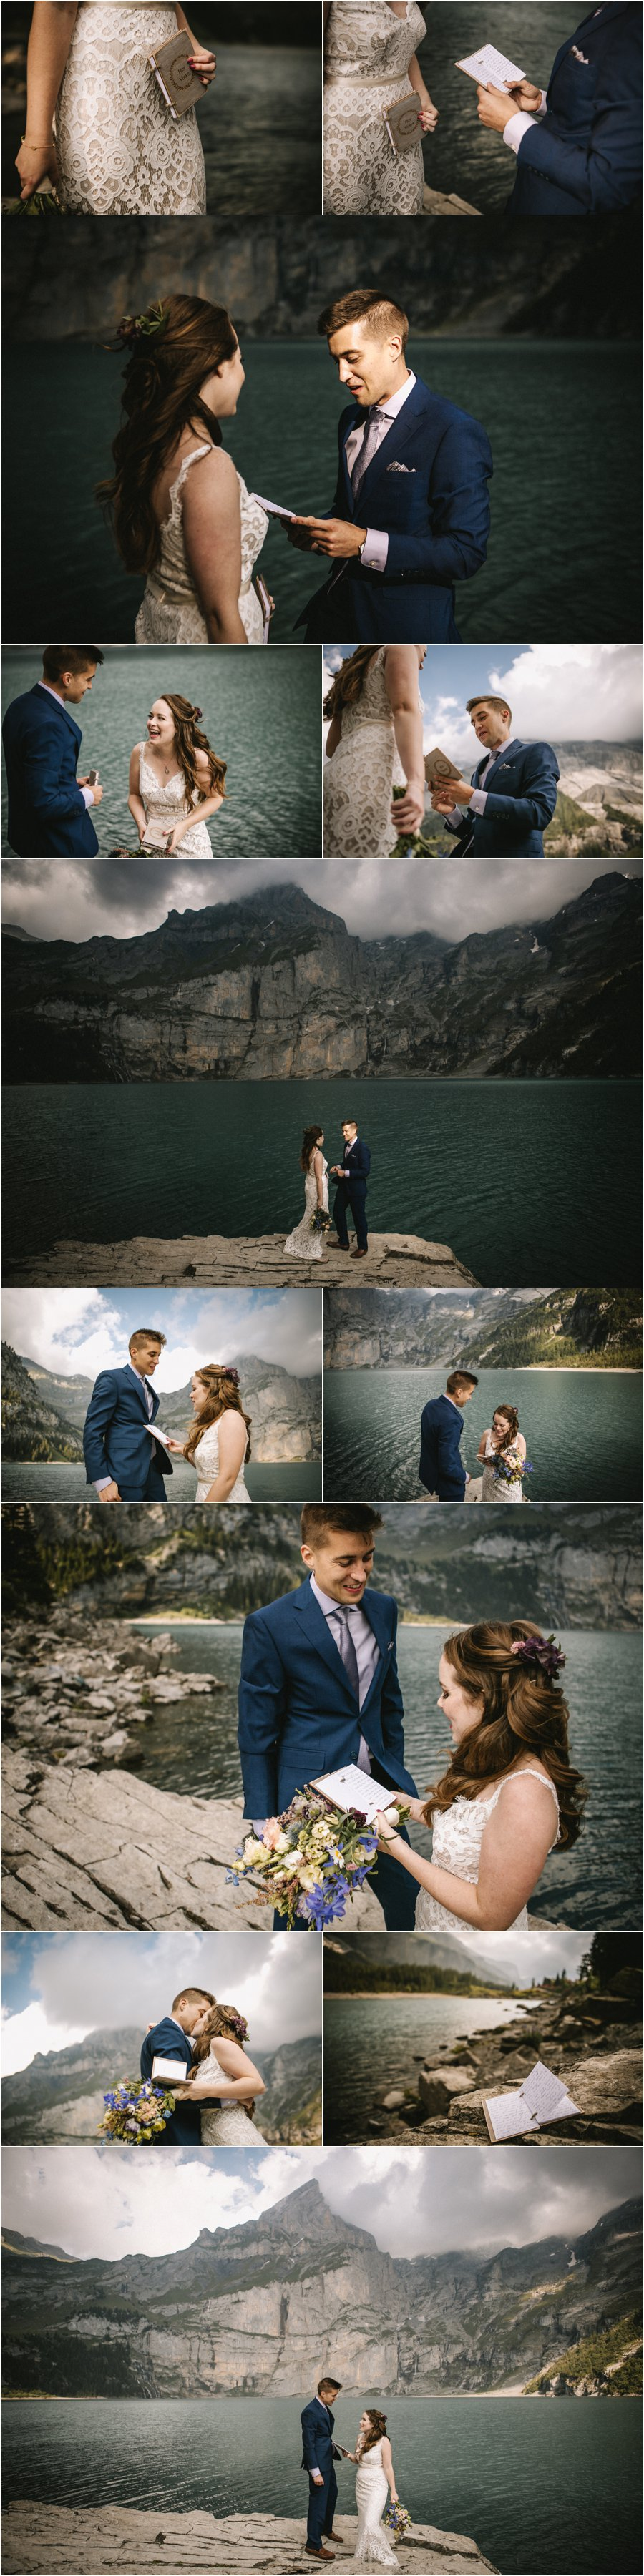 An elopement ceremony in the Swiss Alps, the couple read their hand-written vows to one another by Bendik Photography